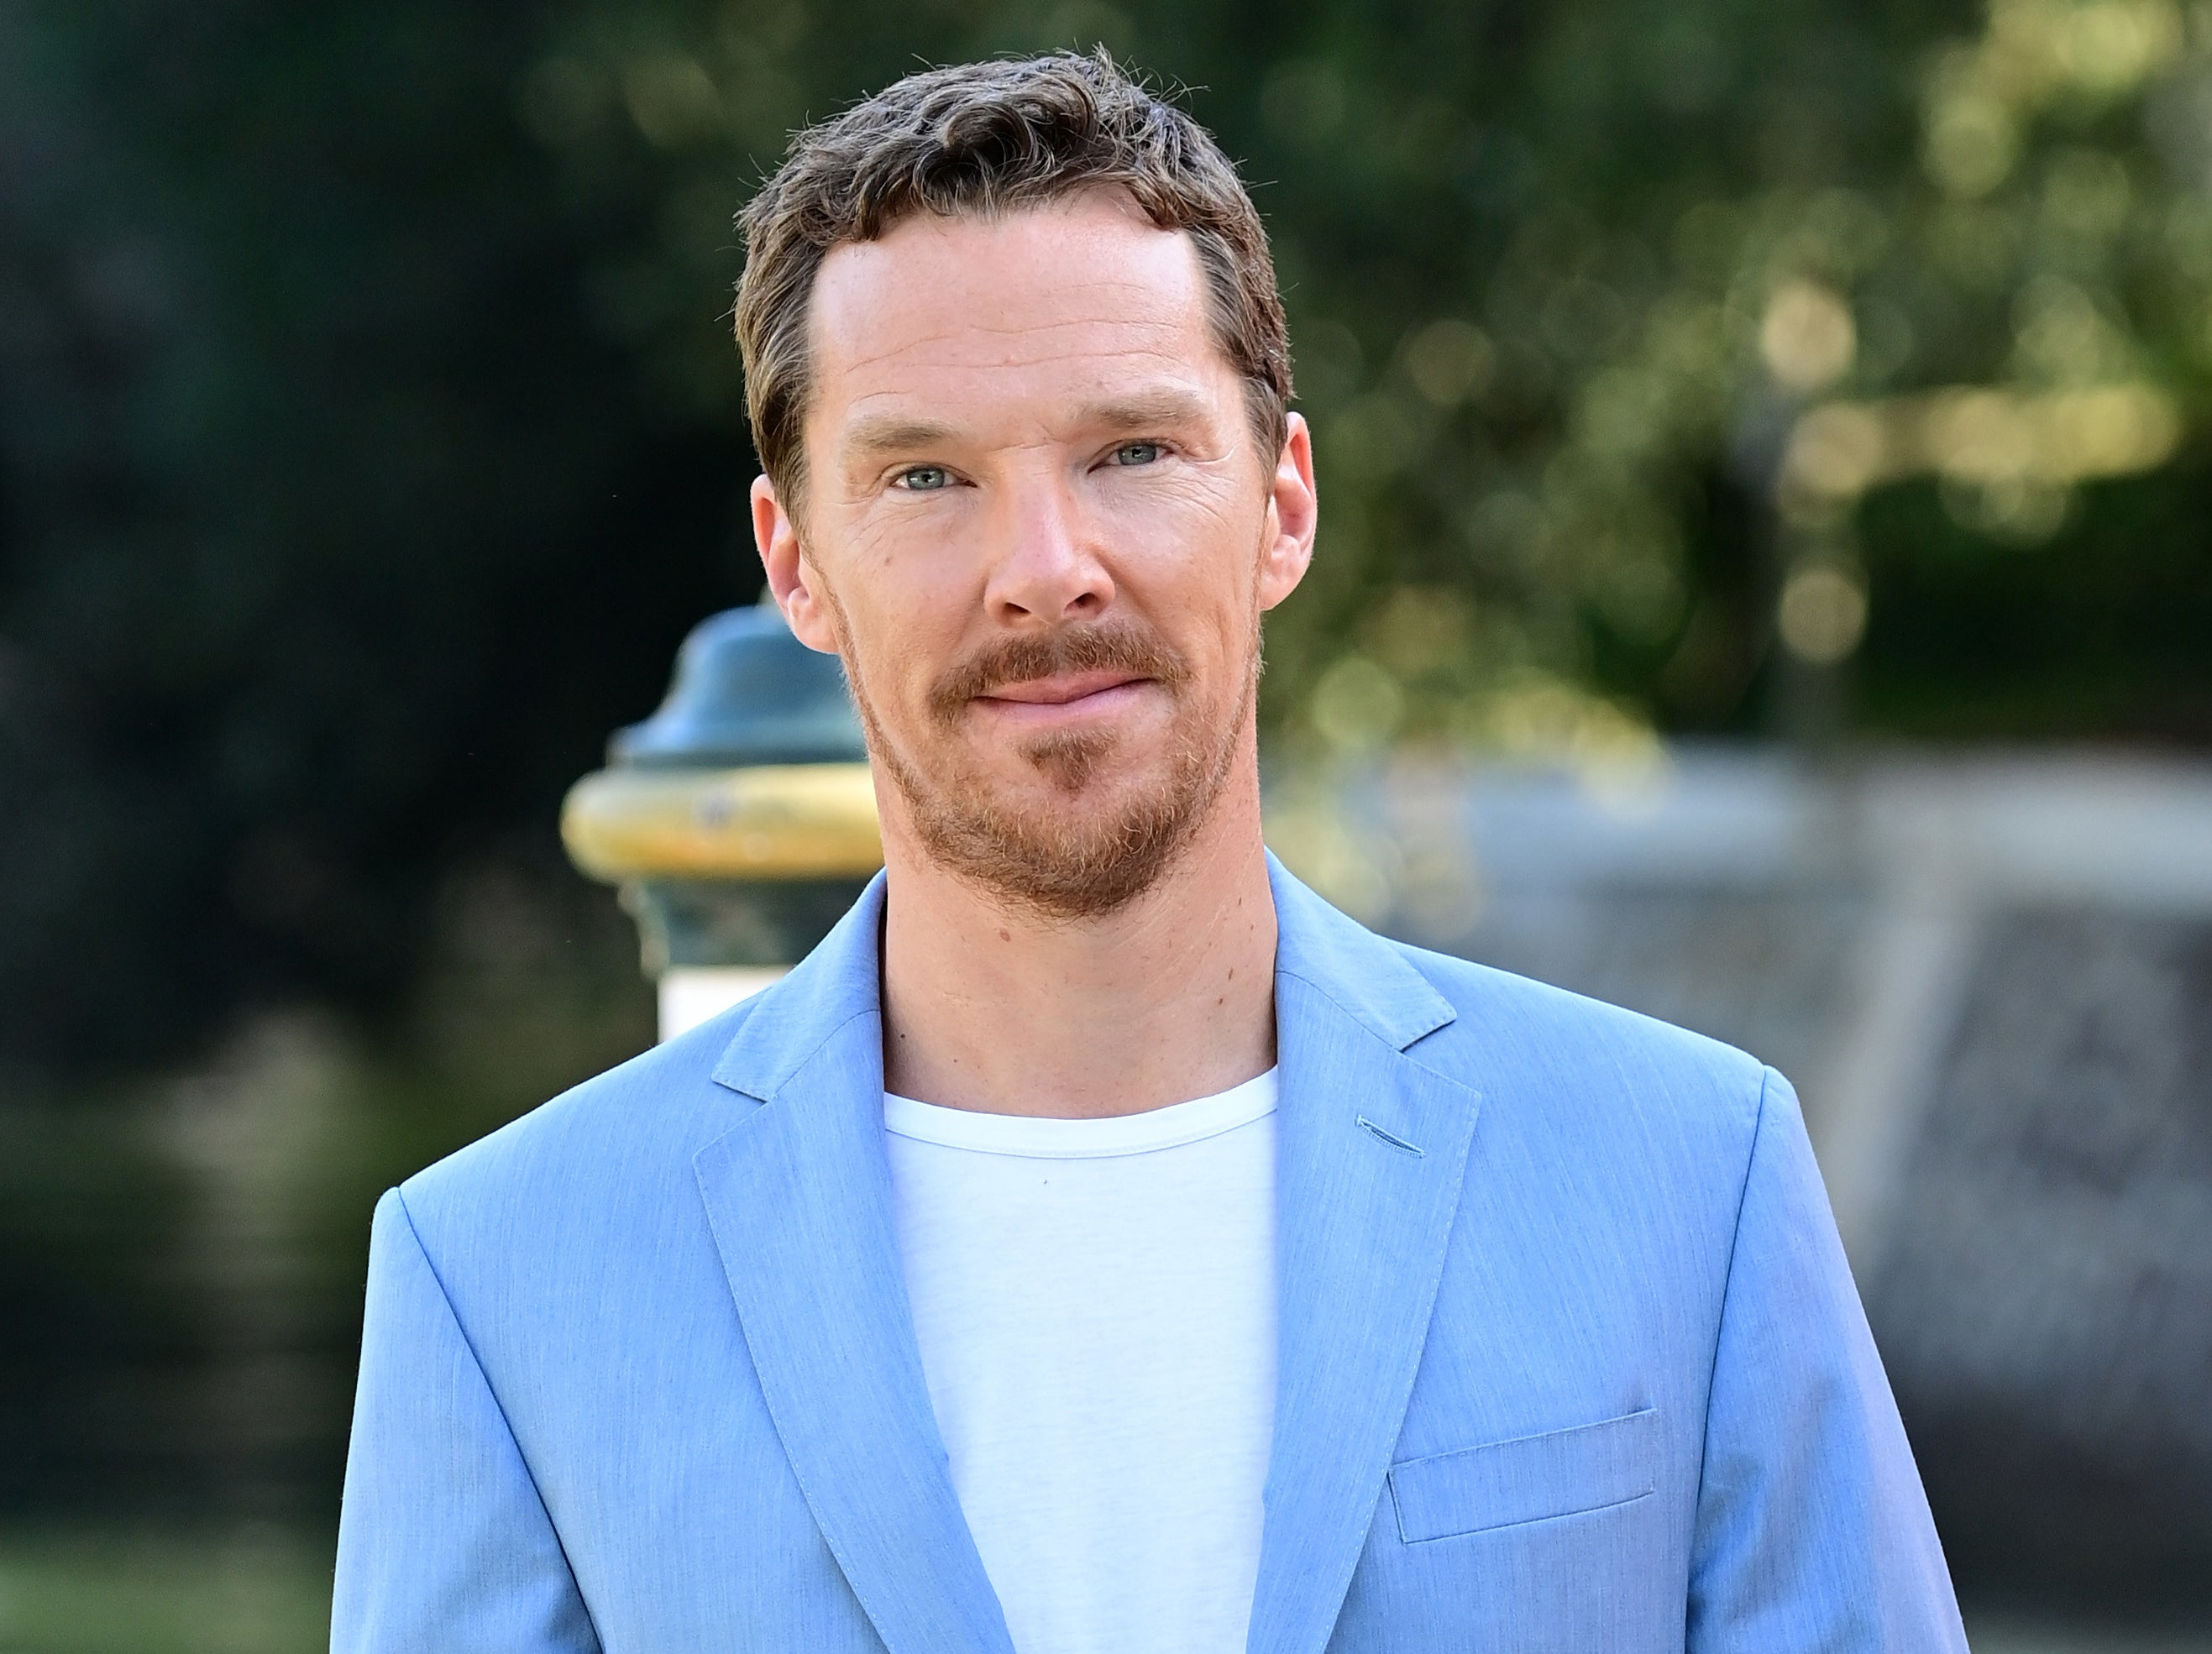 Benedict wears a blue suit jacket and white tee to an outdoor event